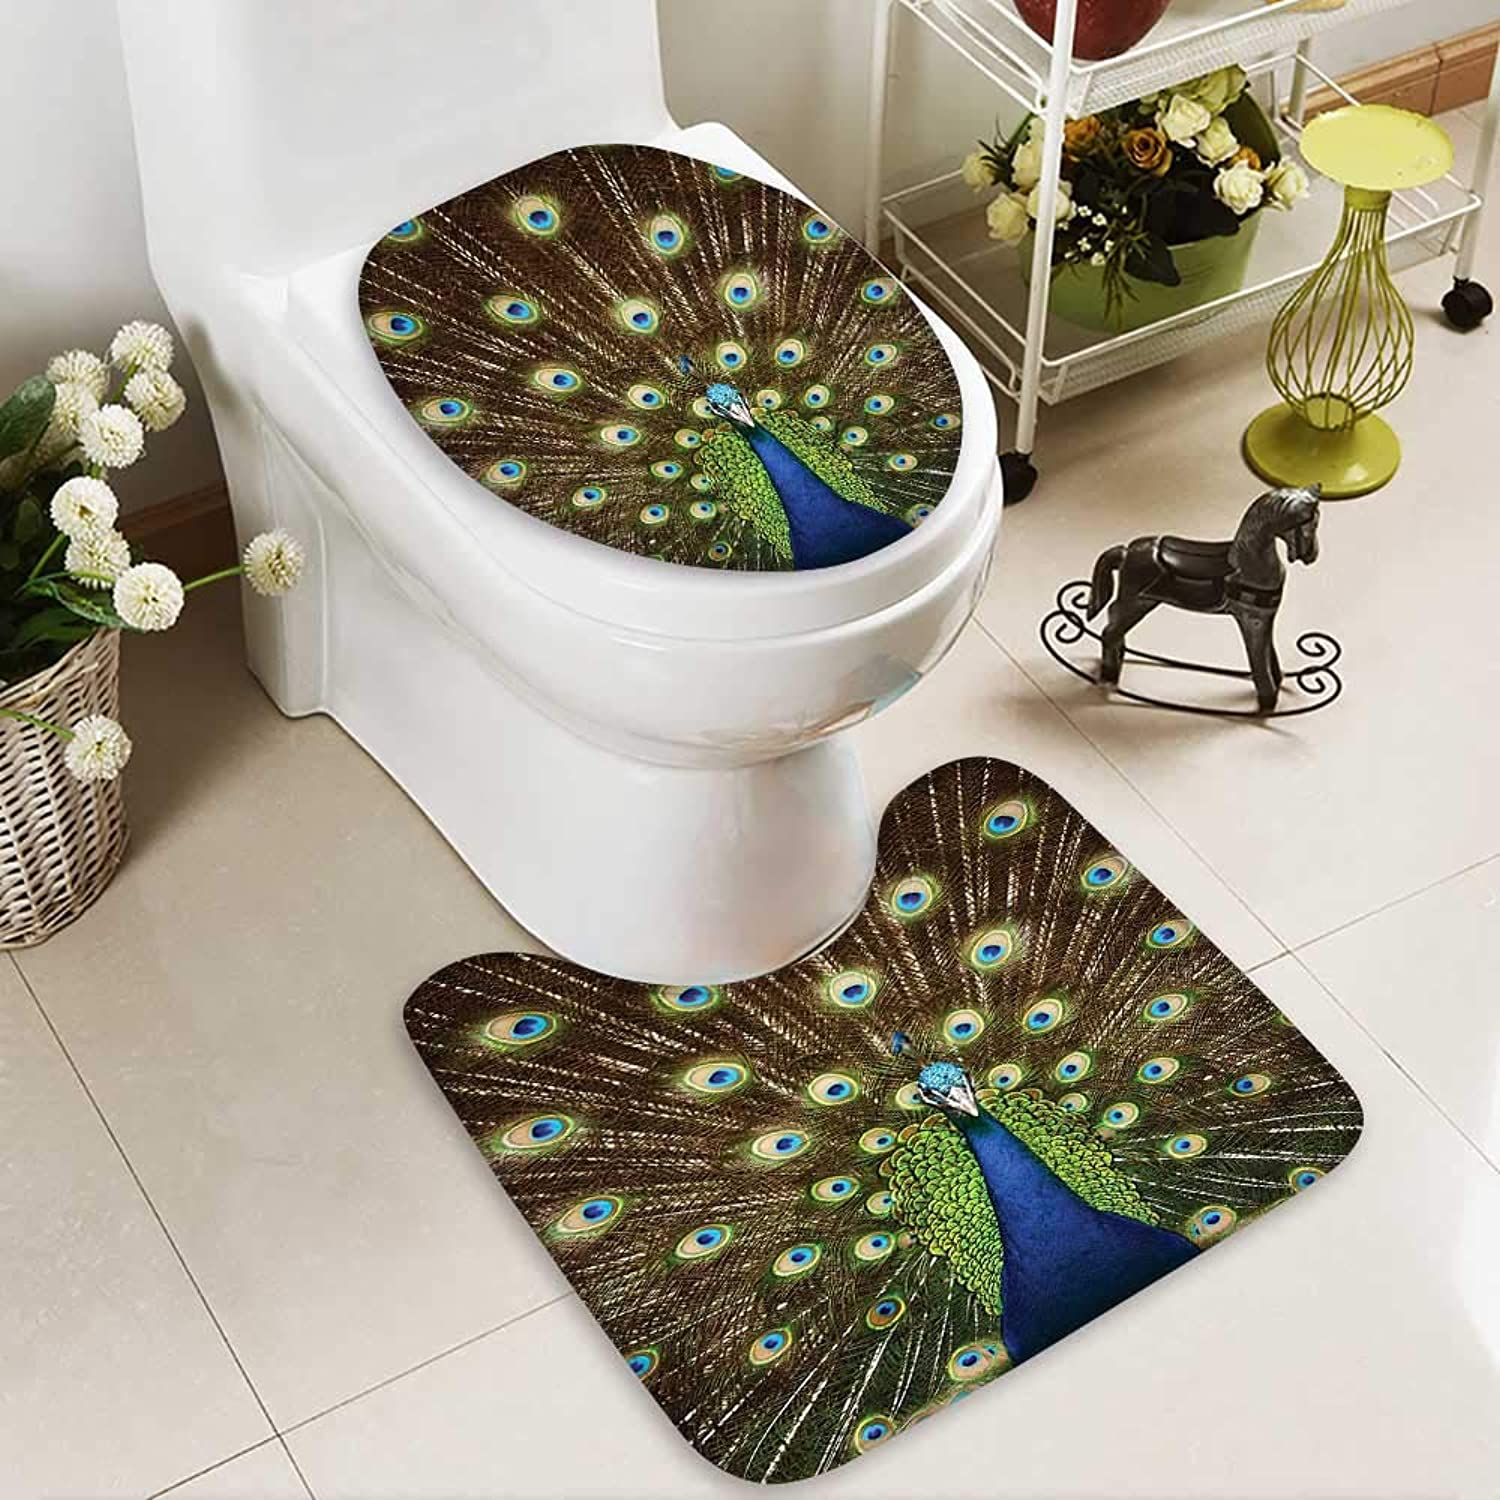 SOCOMIMI U-Shaped Toilet Mat Portrait Peacock Feathers Out Vibrant colors Birds Summertime Garden Washable Non-Slip